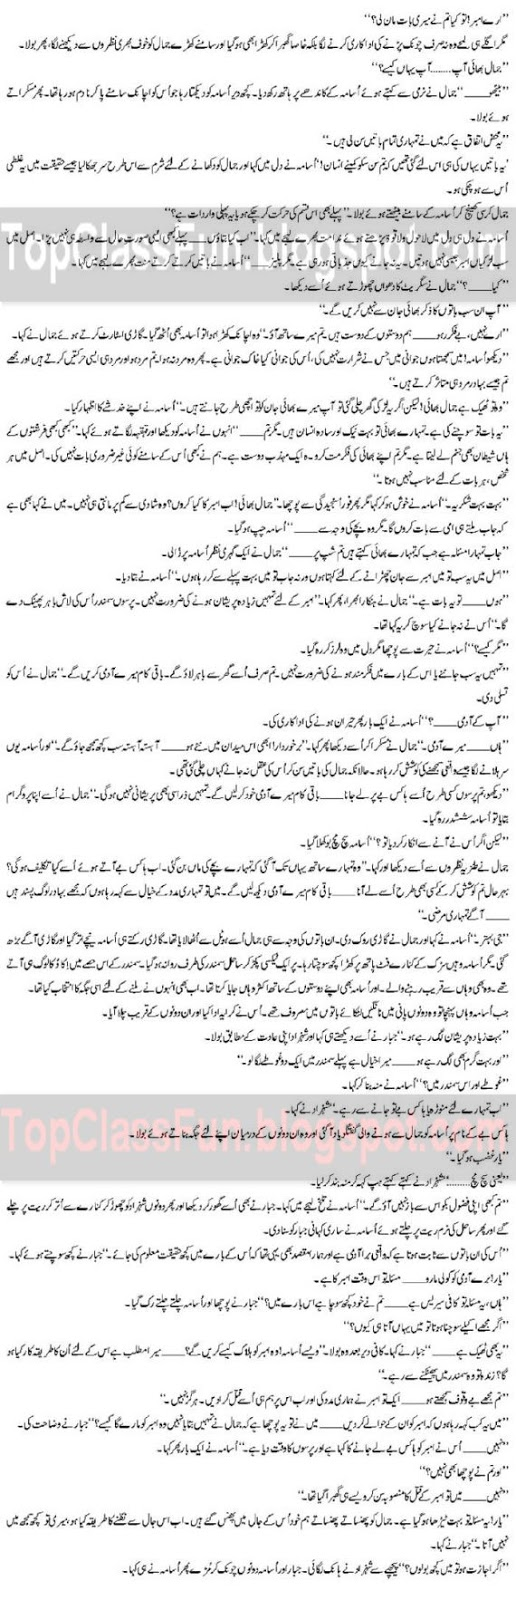 Romantic Urdu Novel - MOHABBAT &#8211; By Shahina Chanda Mehtab Page 10